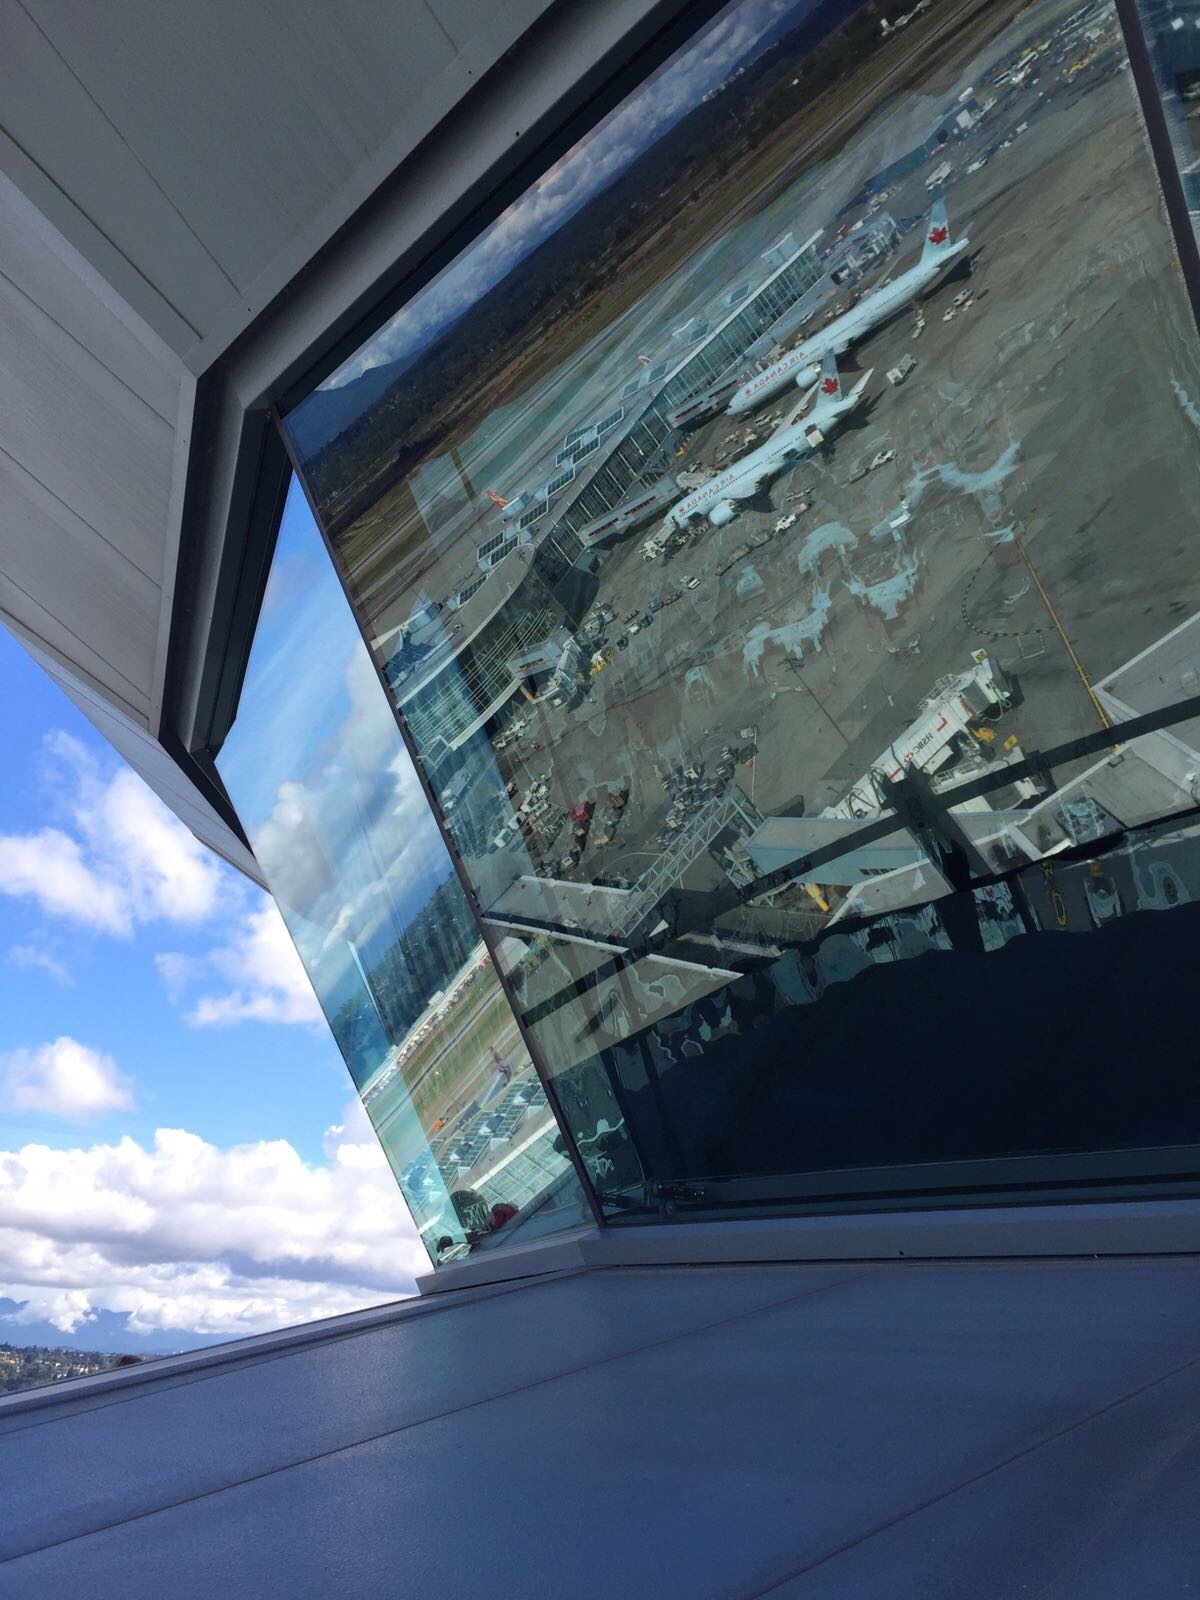 Reflection of the airport on the control tower glass panels